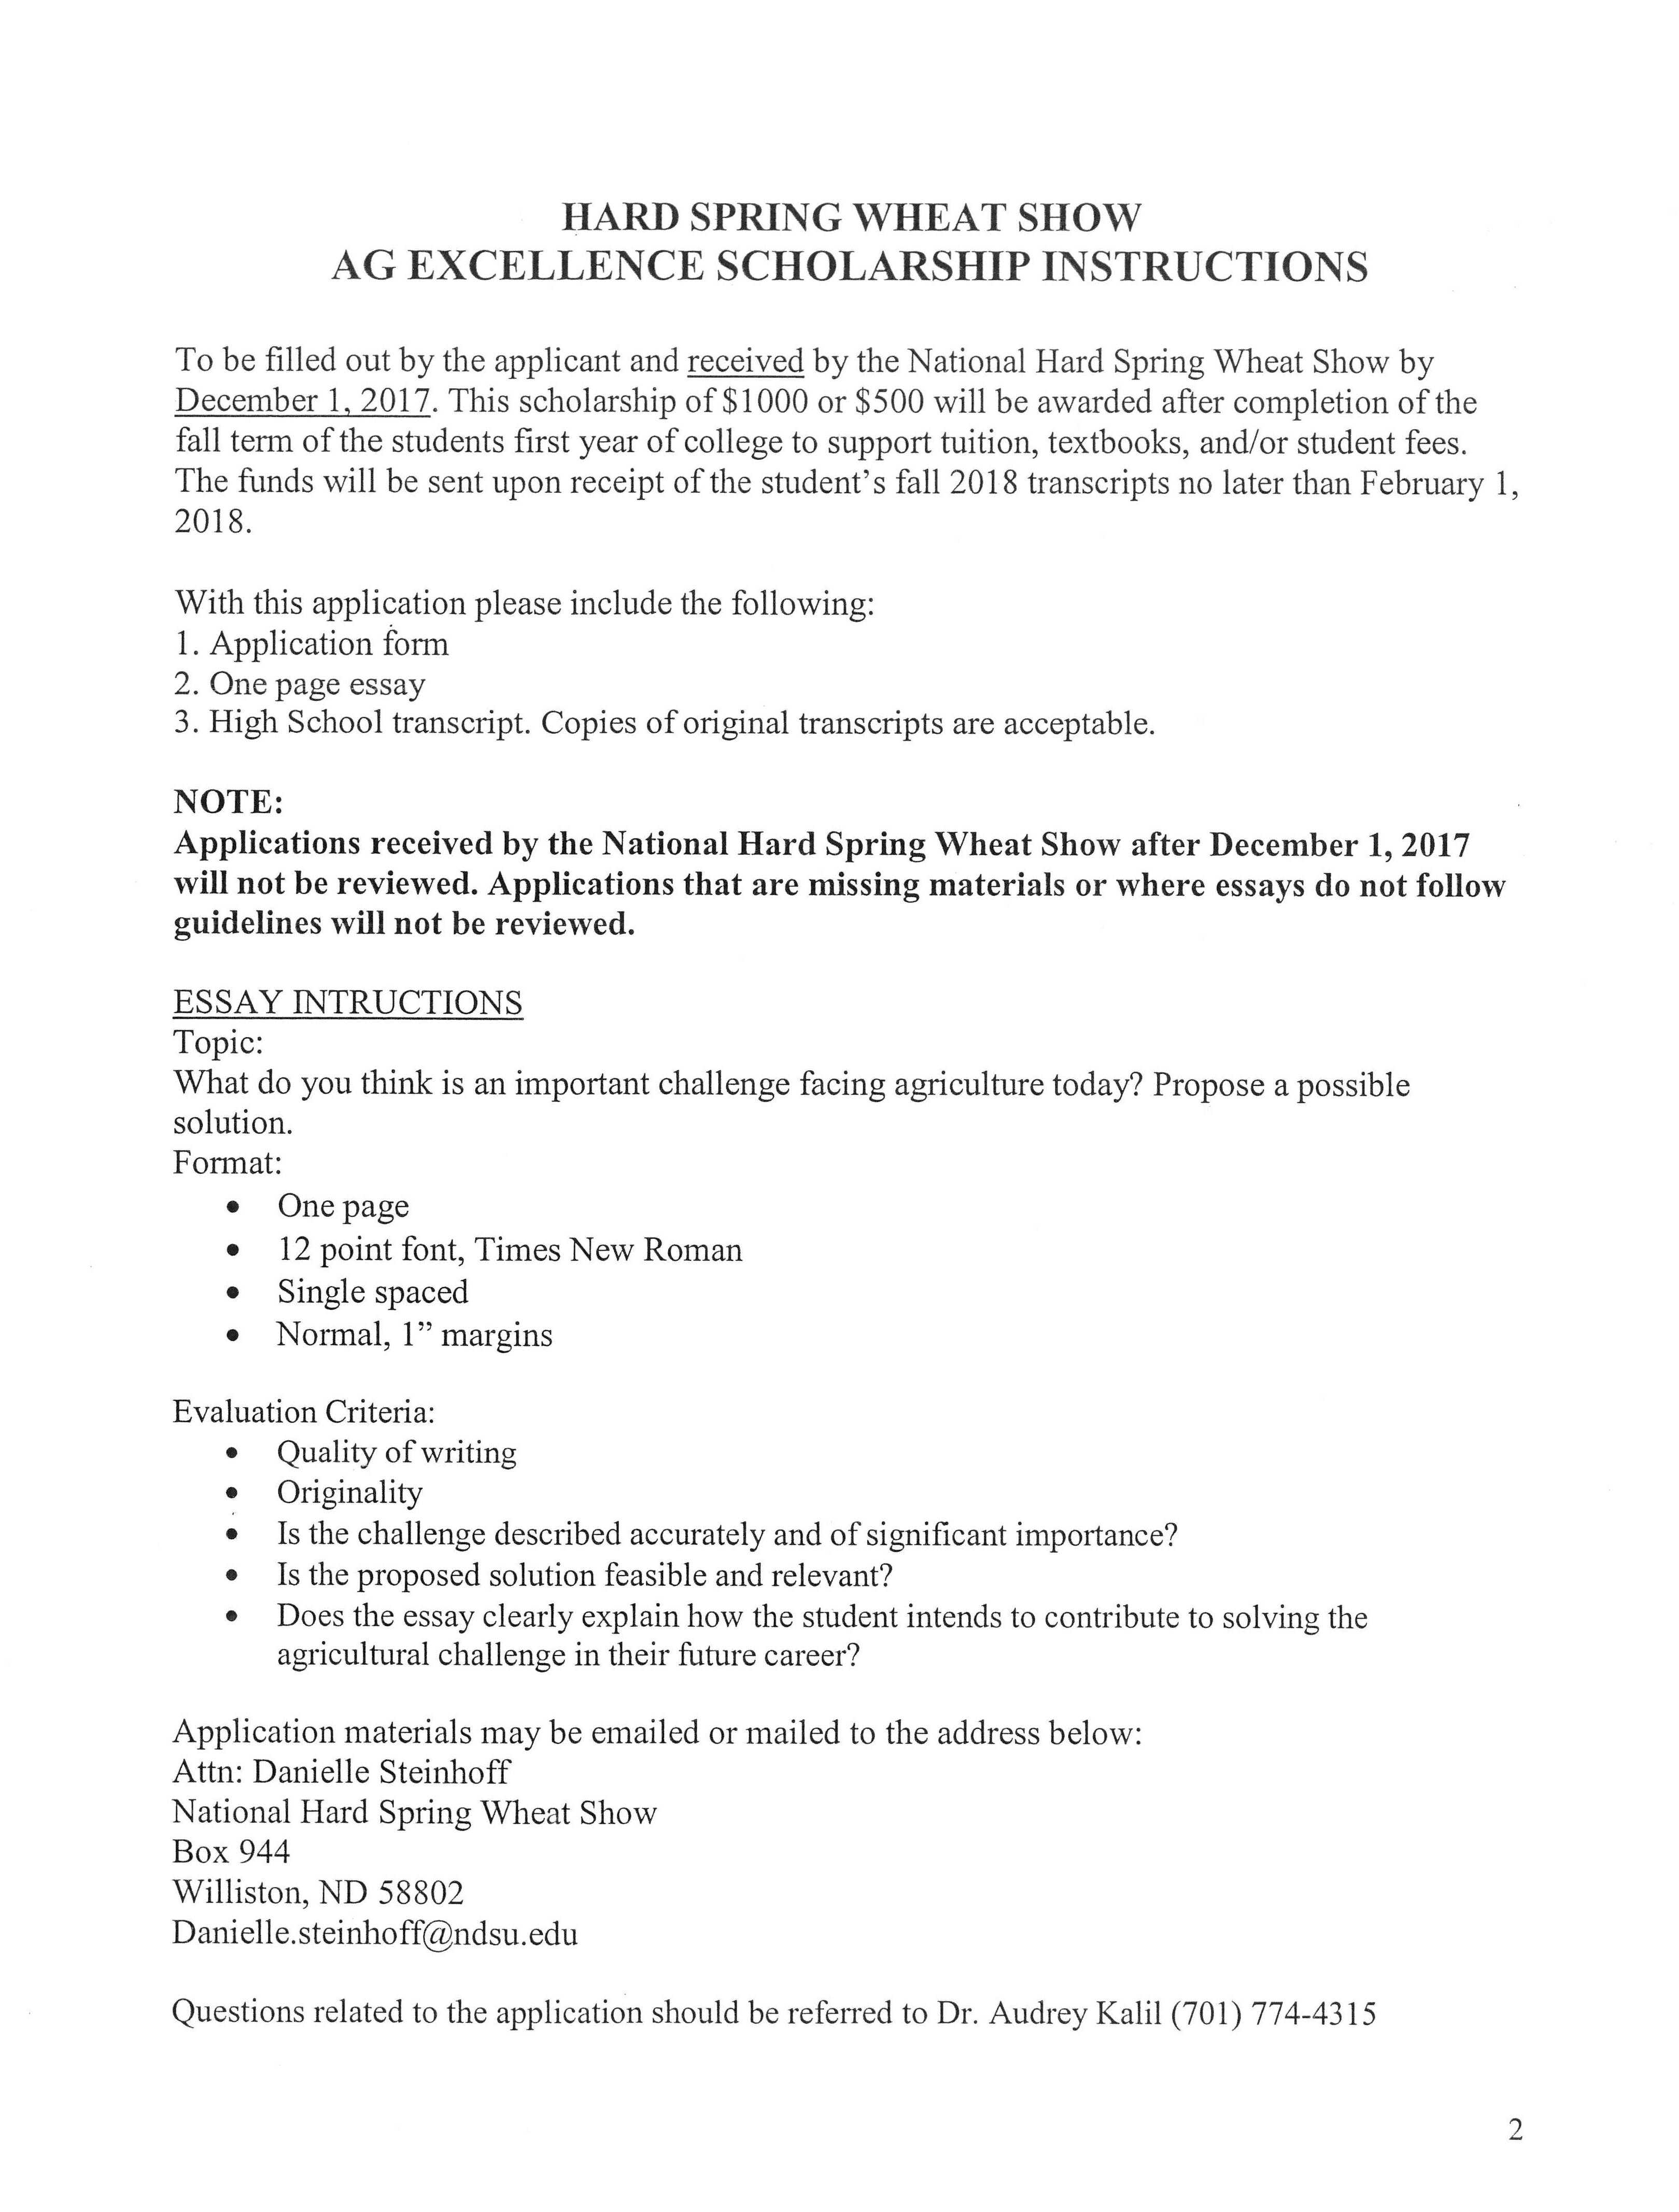 009 Page 2 Essay Example Scholarships That Don T Require Remarkable Essays Are There Any Don't 2019 Canadian Full